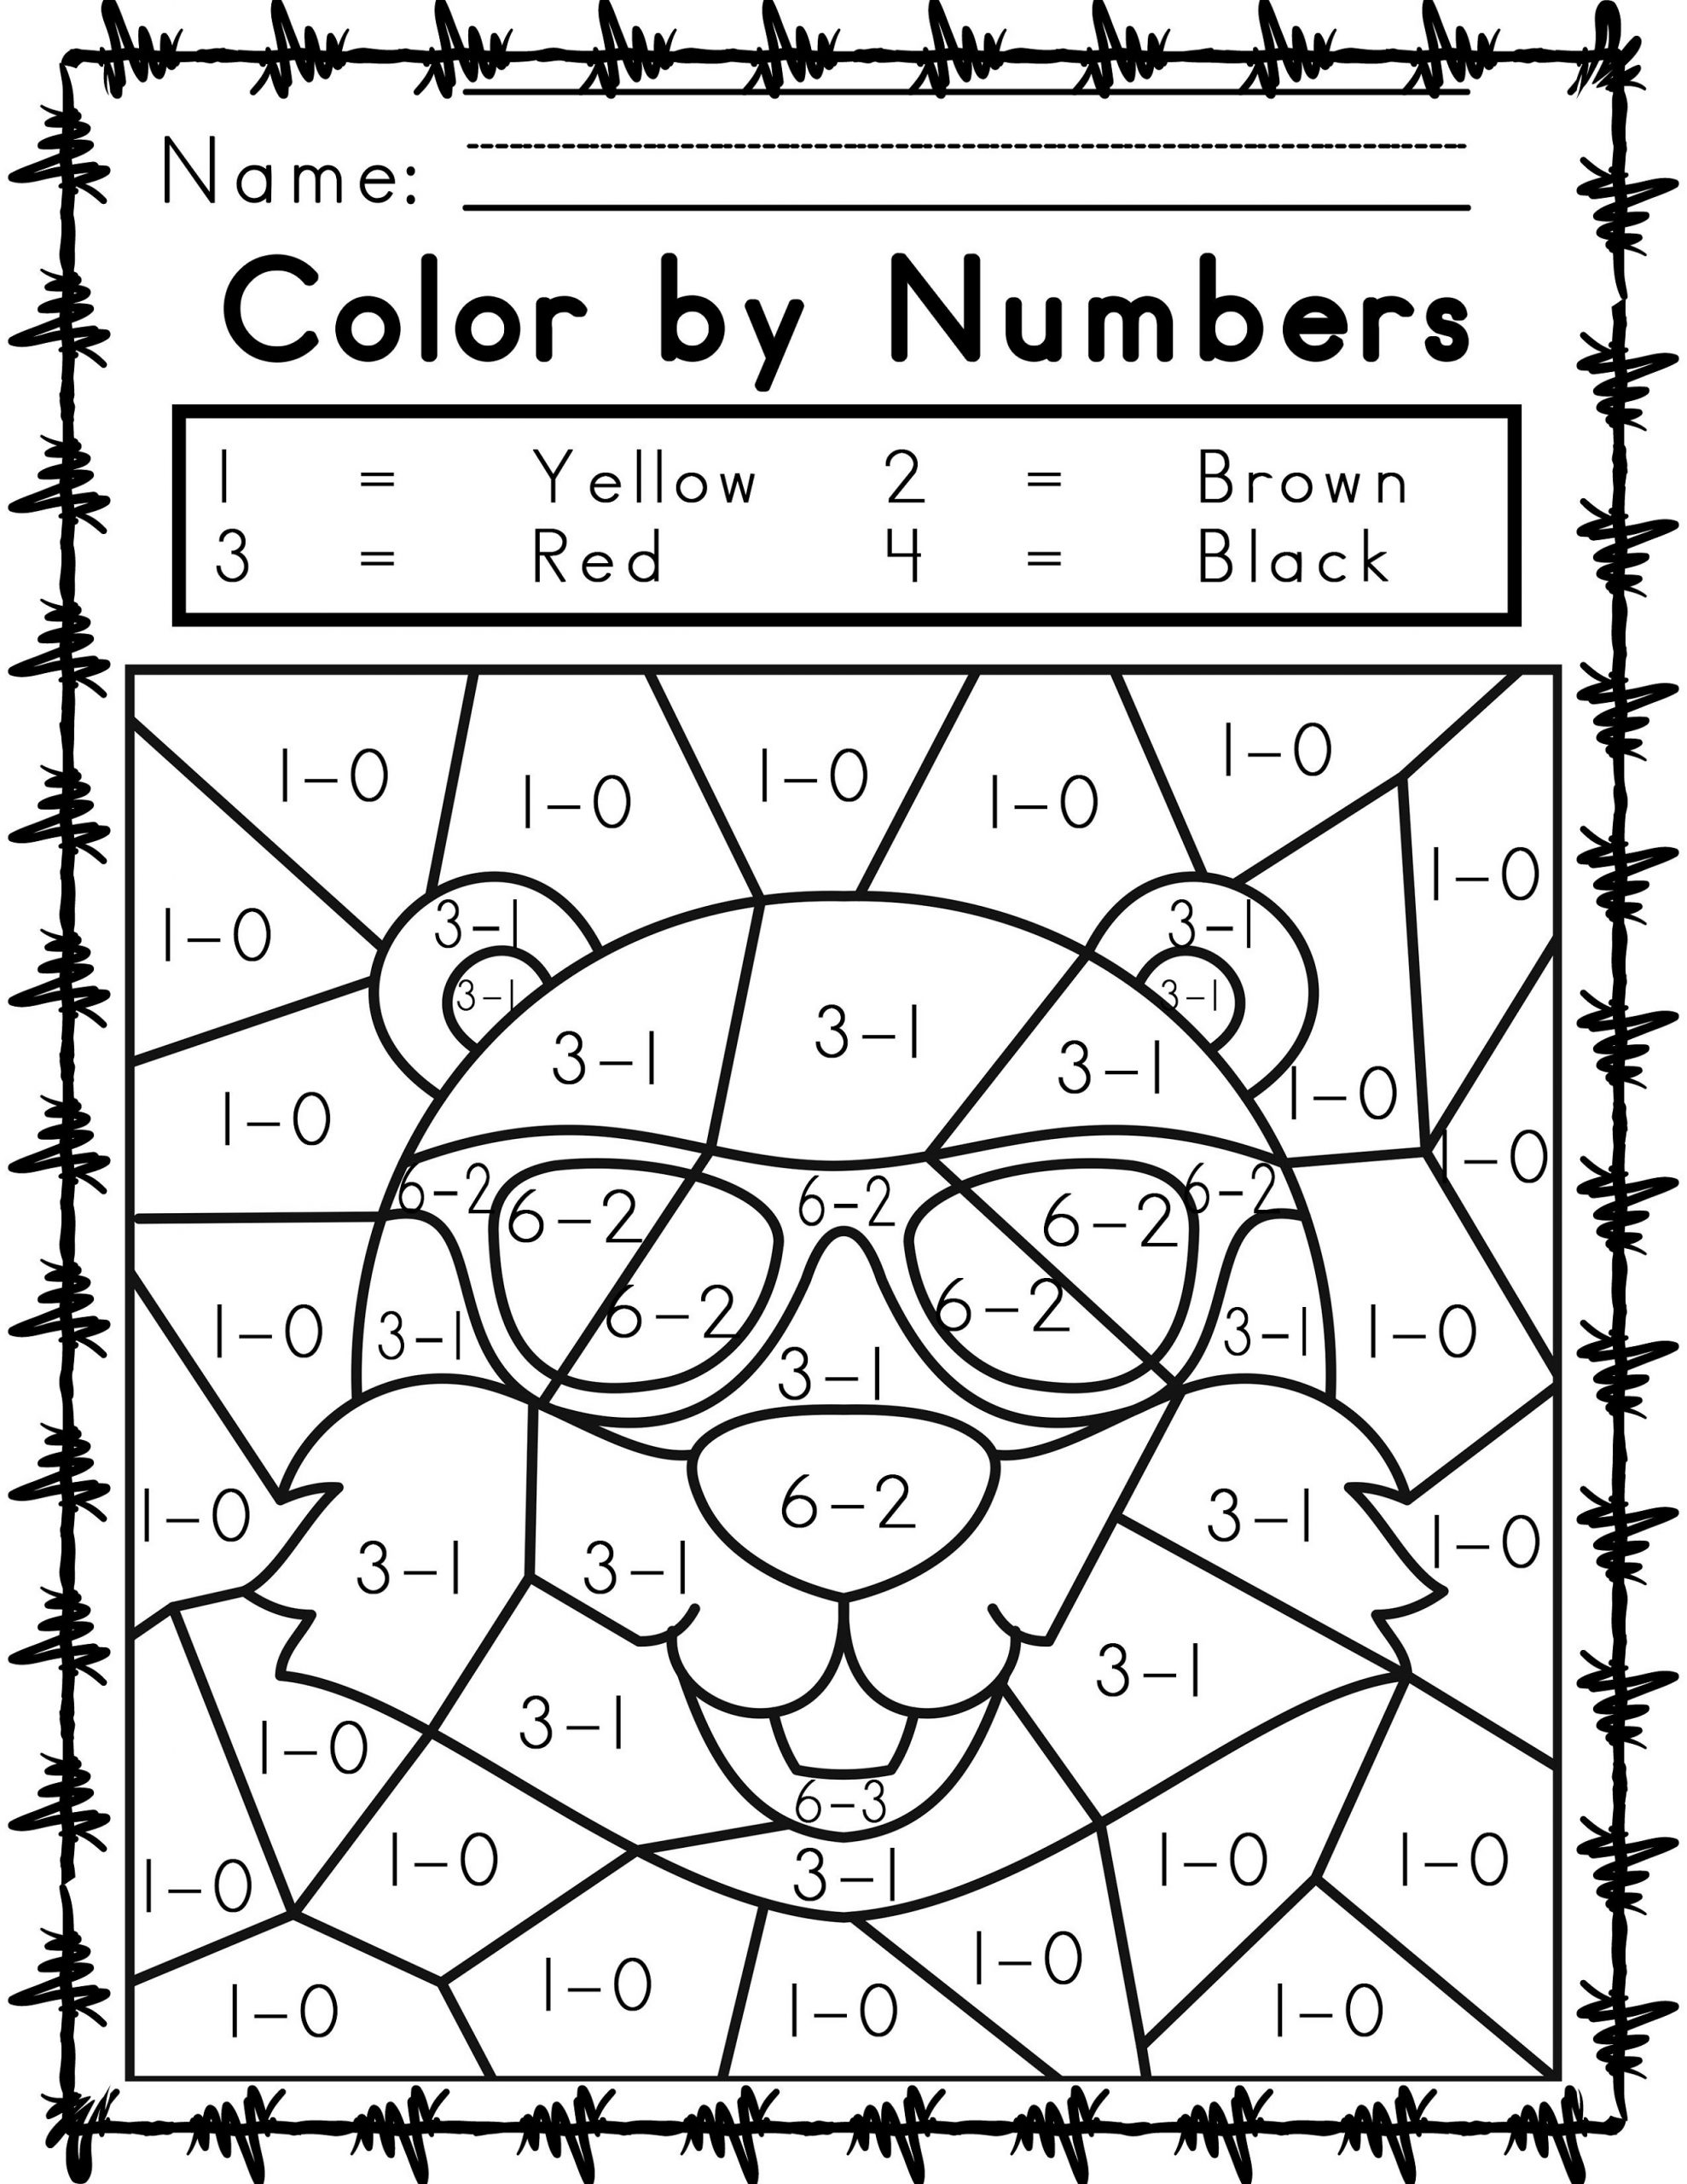 Printable Easy And Hard Color By Number Games